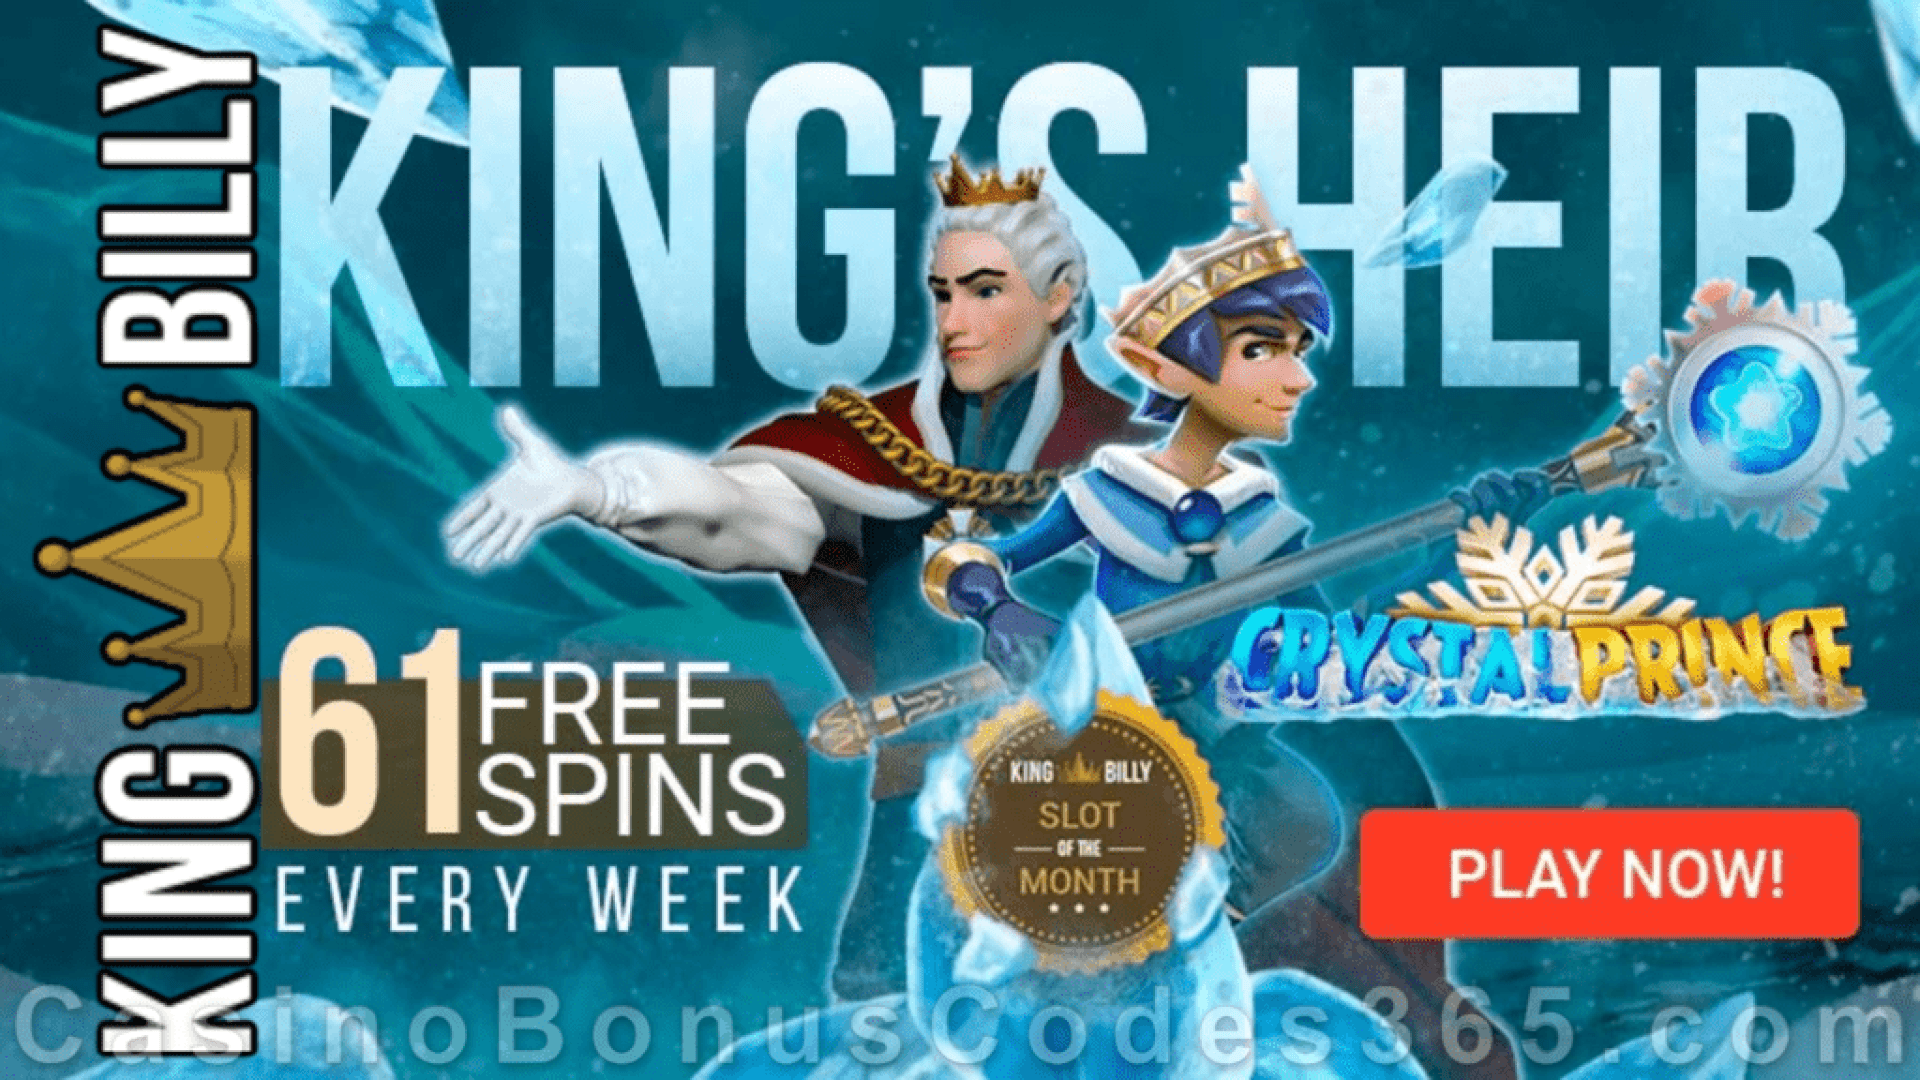 King Billy Casino 61 FREE Spins on Quickspin Crystal Prince Slot of the Month Promo